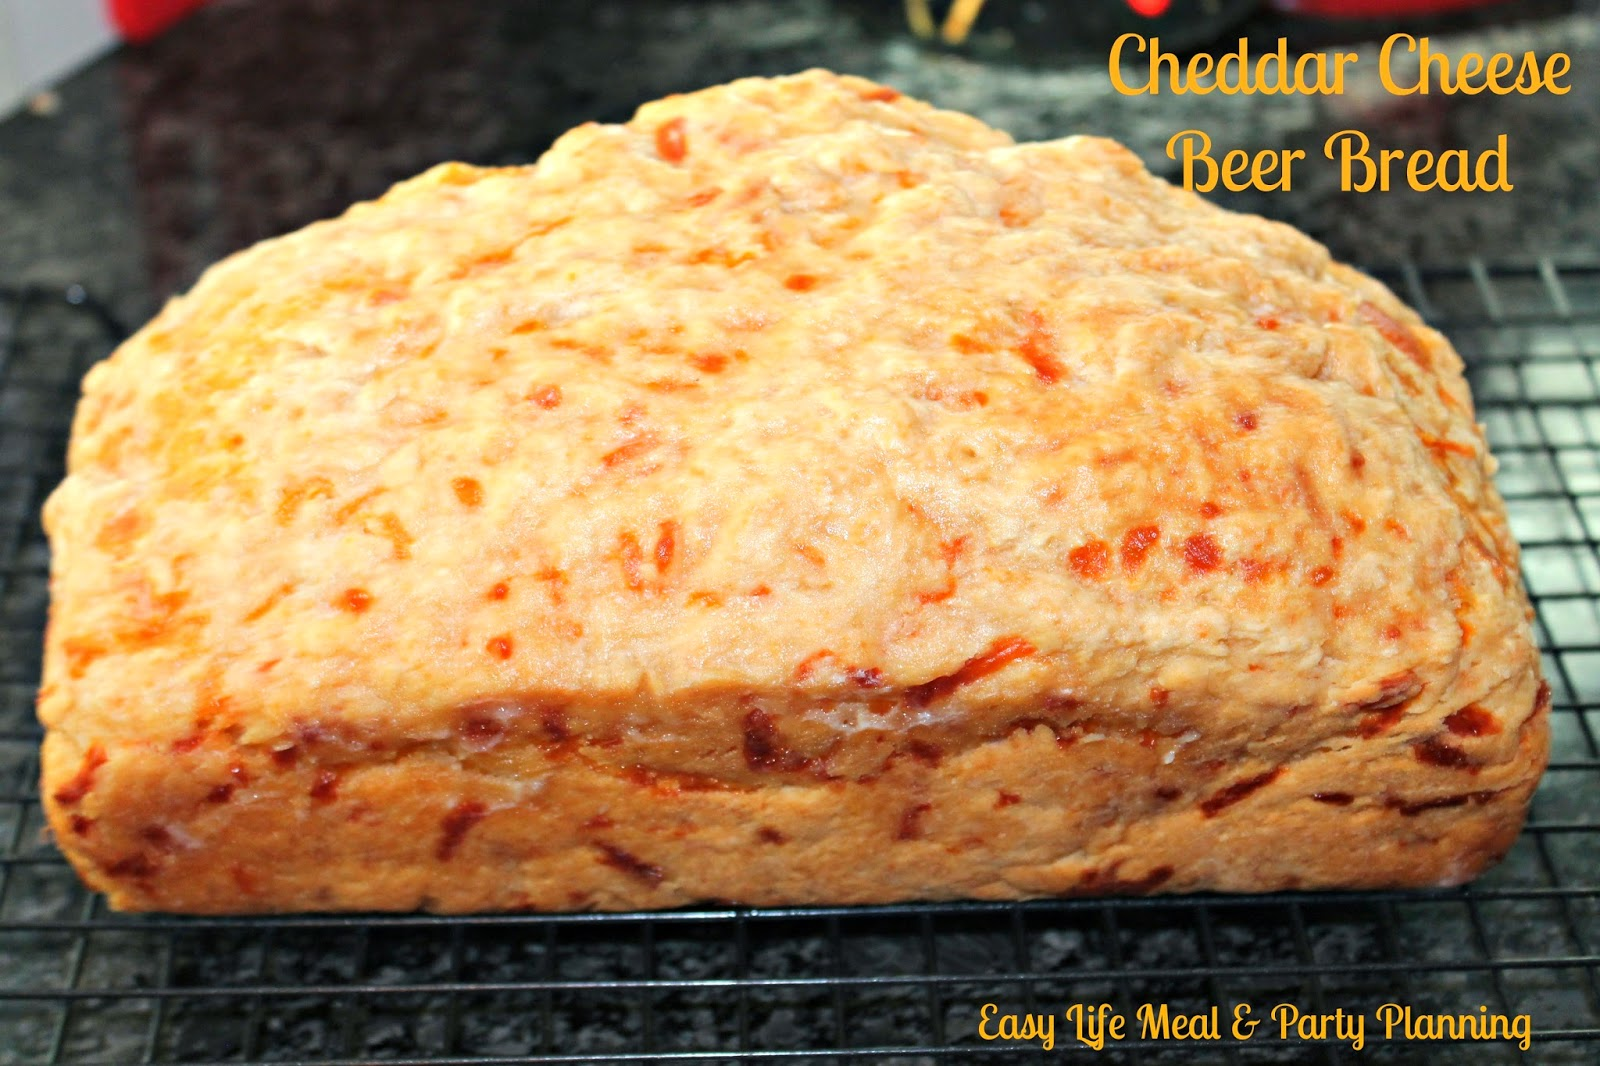 Ceddar Cheese Beer Bread - Easy Life Meal & Party Planning - This is the easiest bread in the world to make and it is so melt in your mouth good!